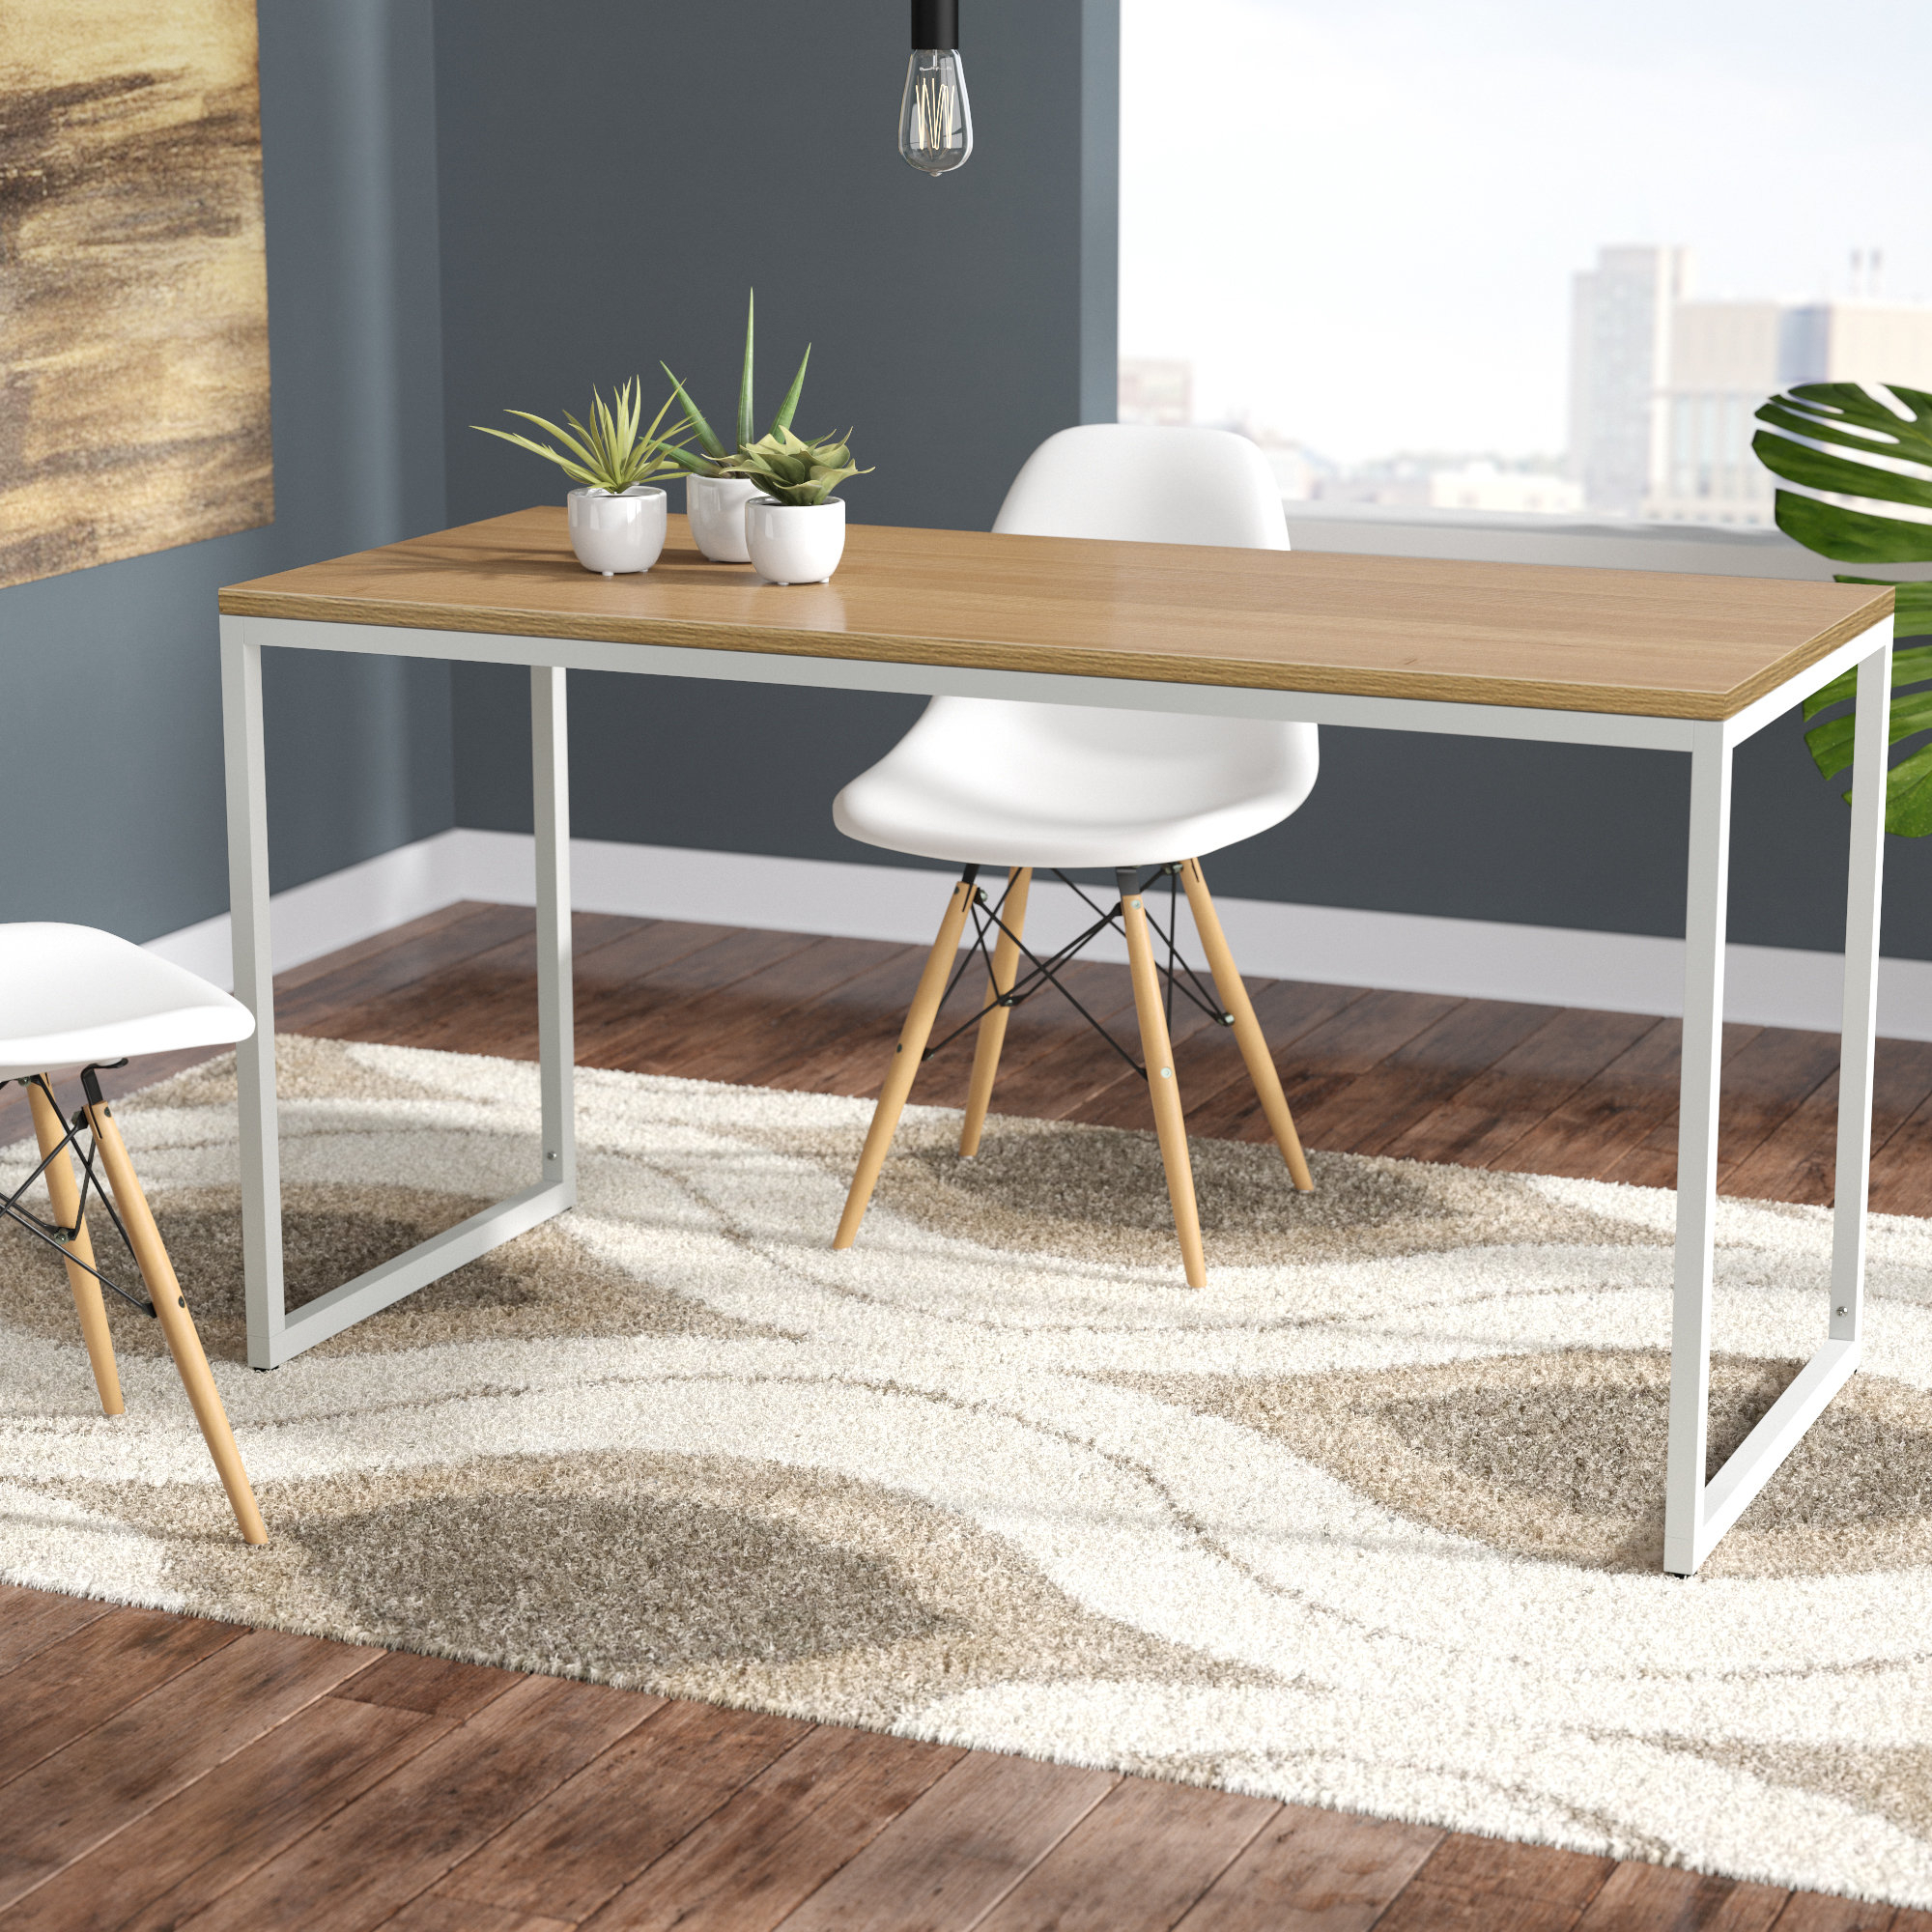 Chelmsford Dining Table Throughout Best And Newest Chelmsford 3 Piece Dining Sets (Gallery 5 of 20)